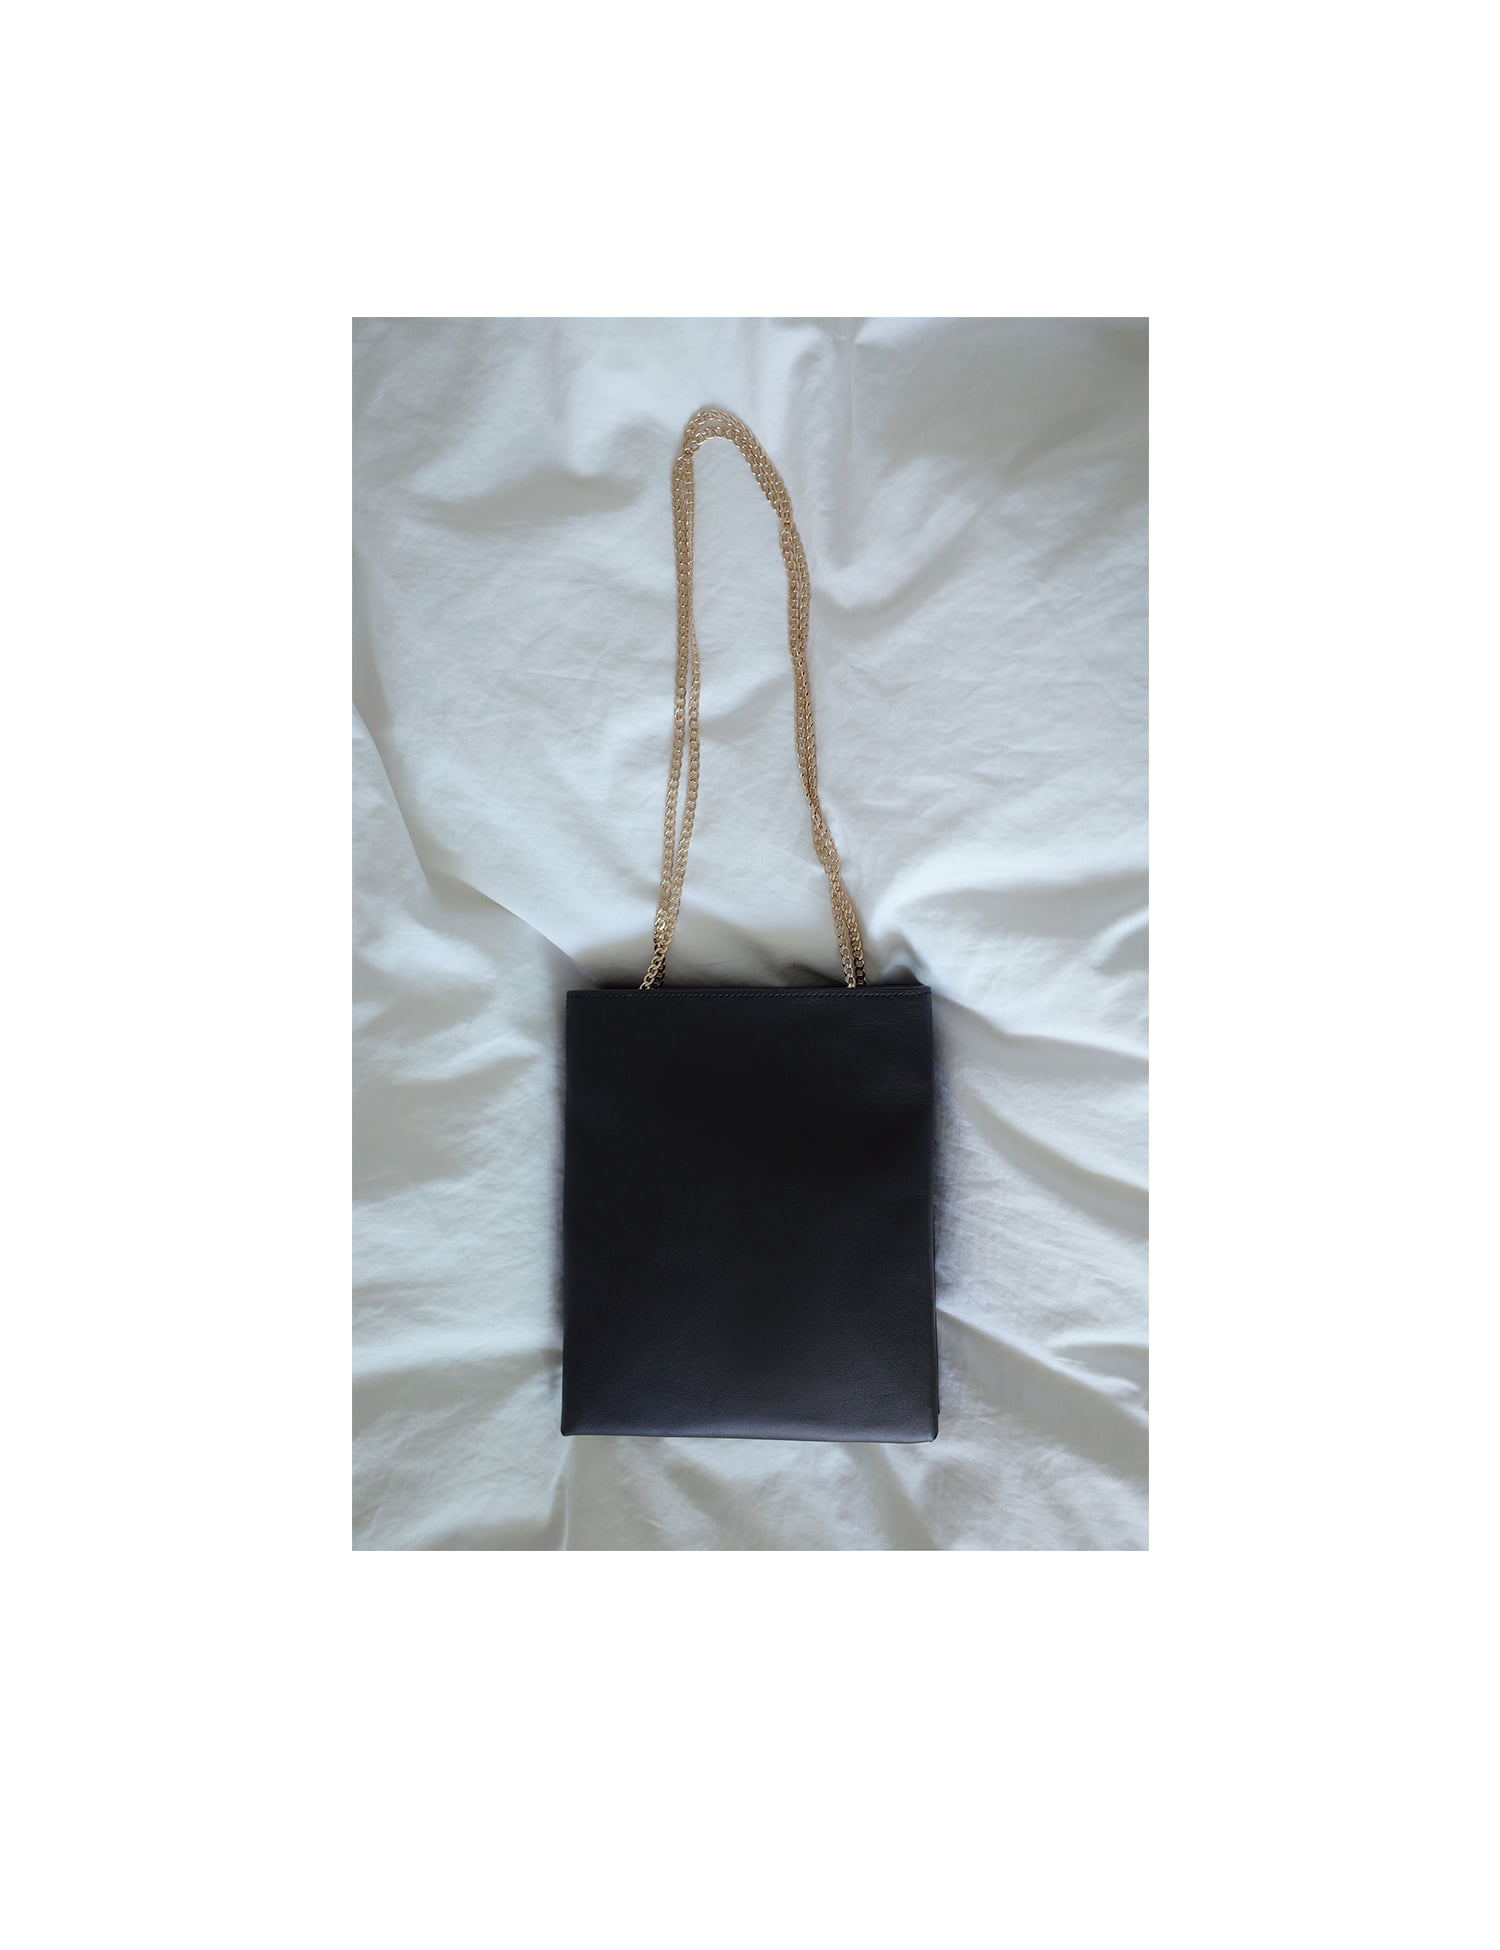 base bag (handmade)